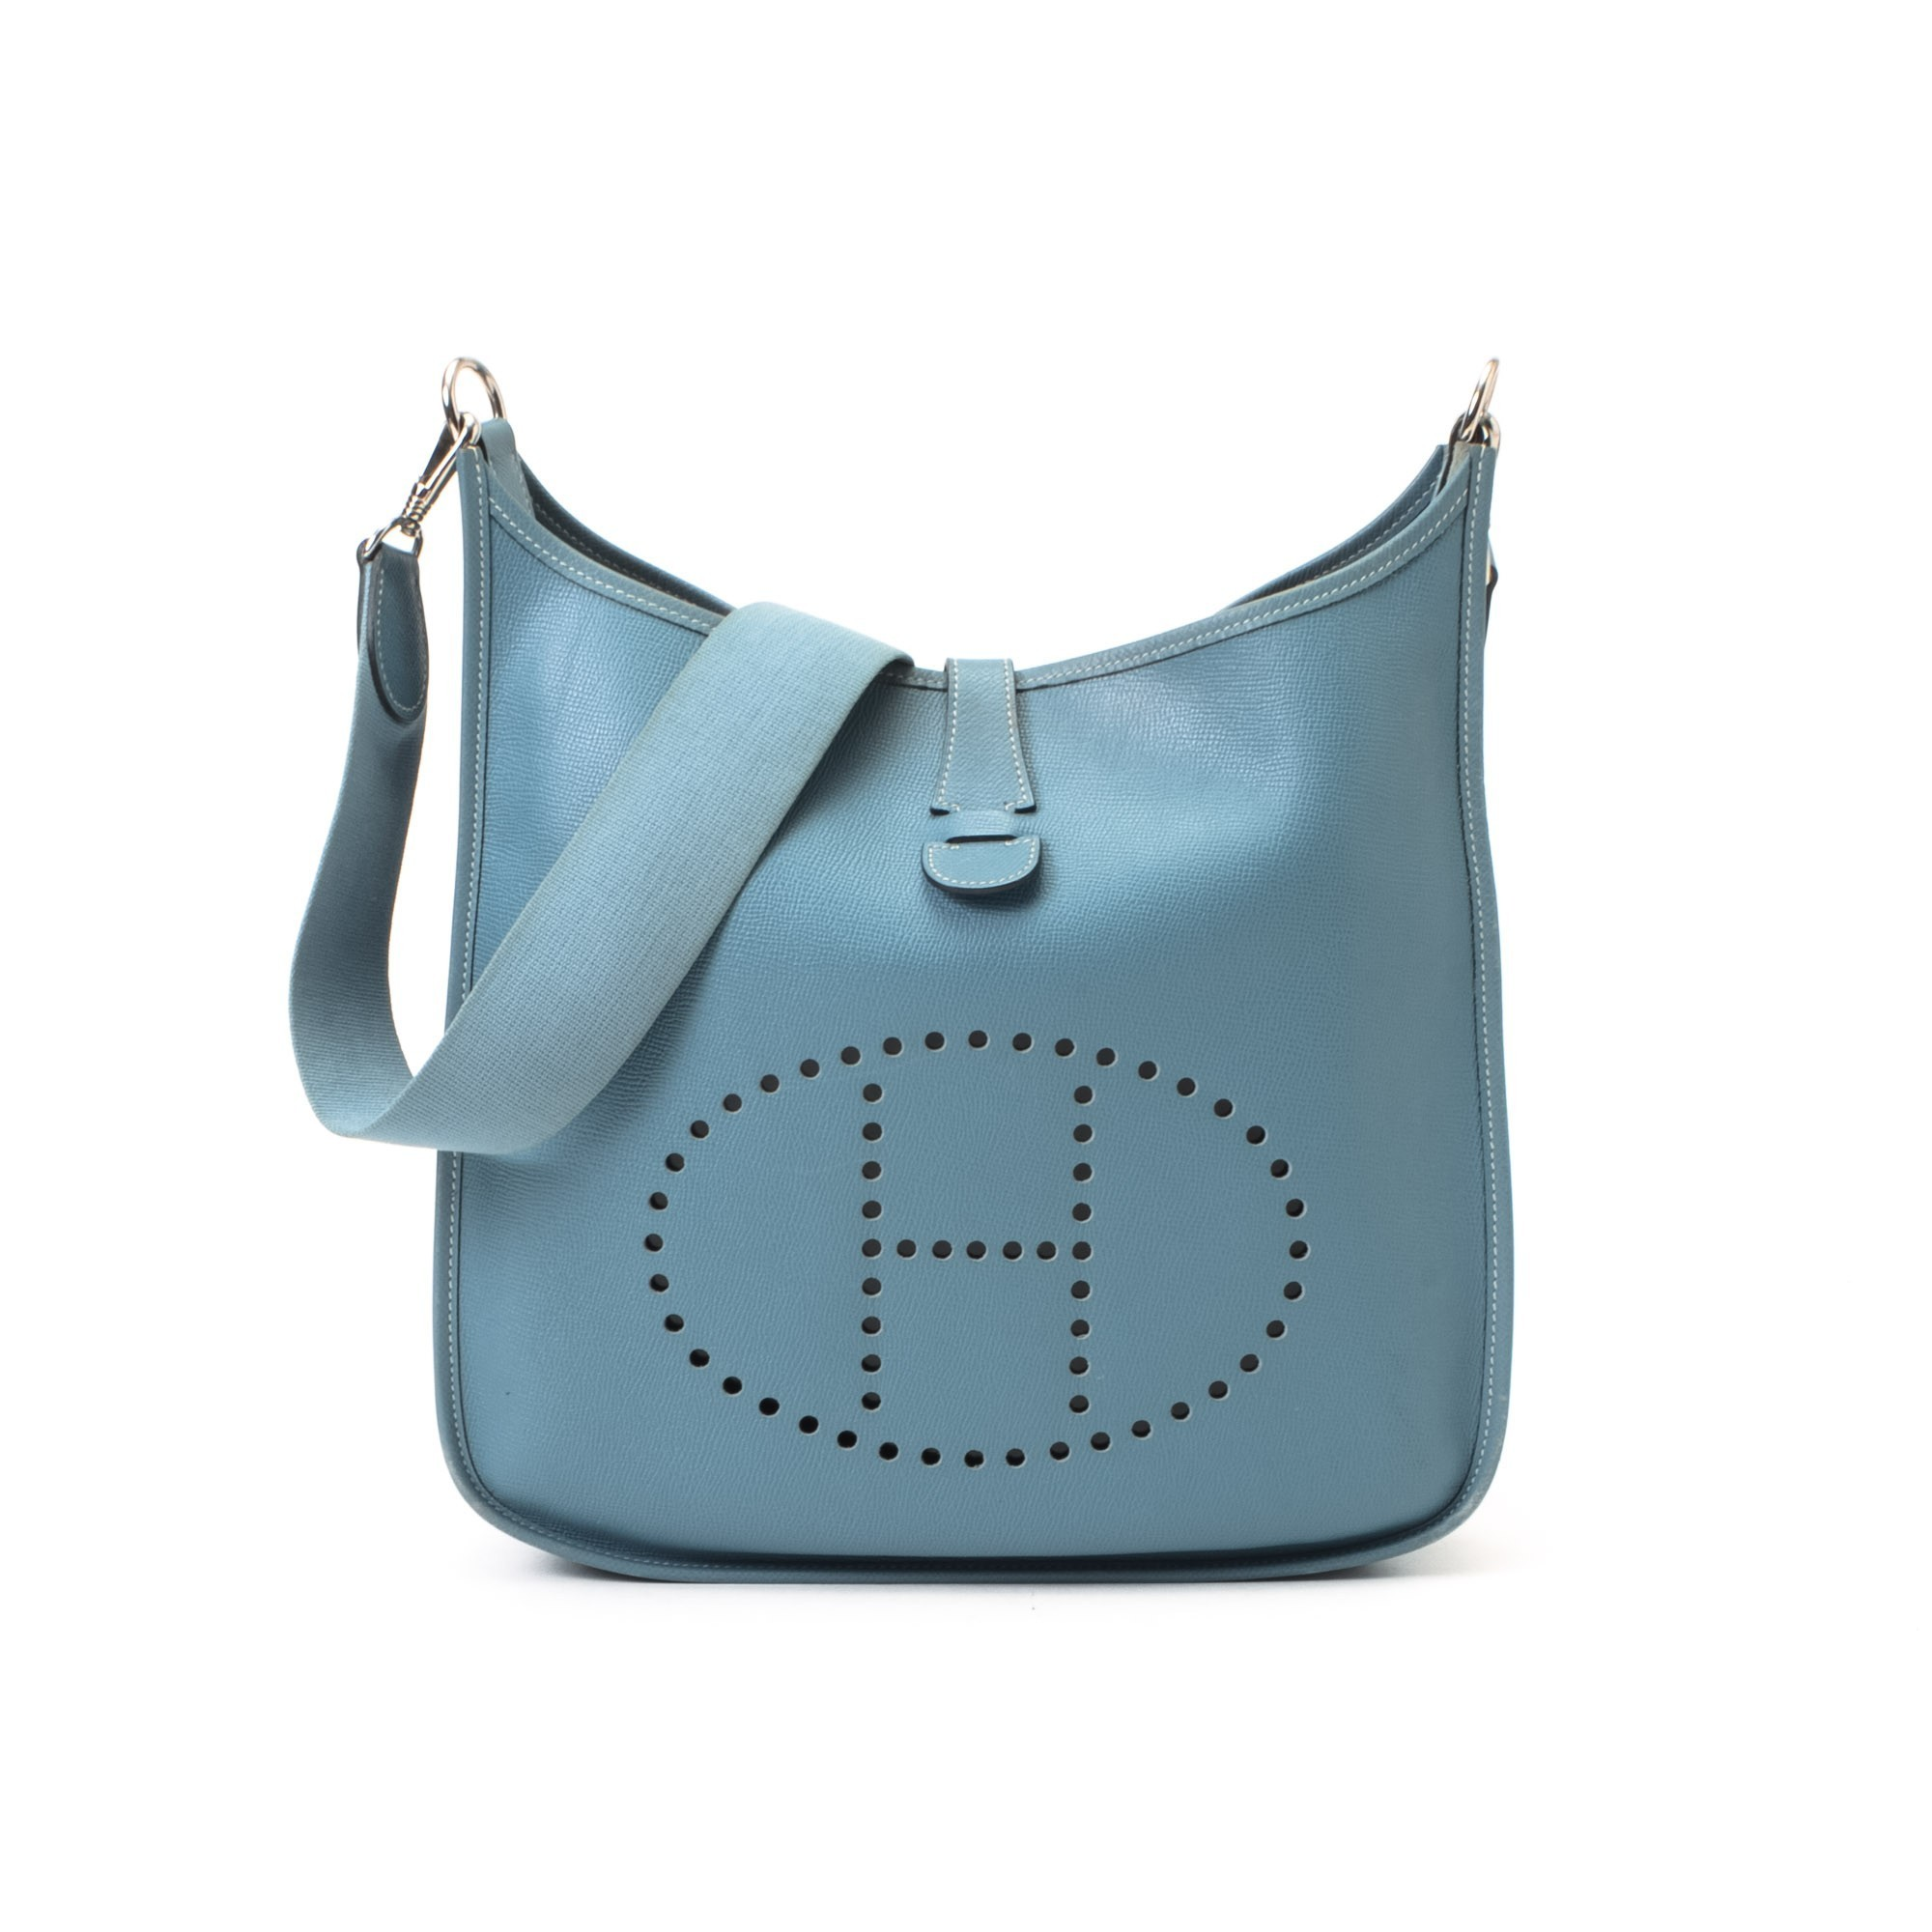 Herm¨¨s Hermes Evelyne Evelyne GM Blue Jean Calf Shoulder Bag ...